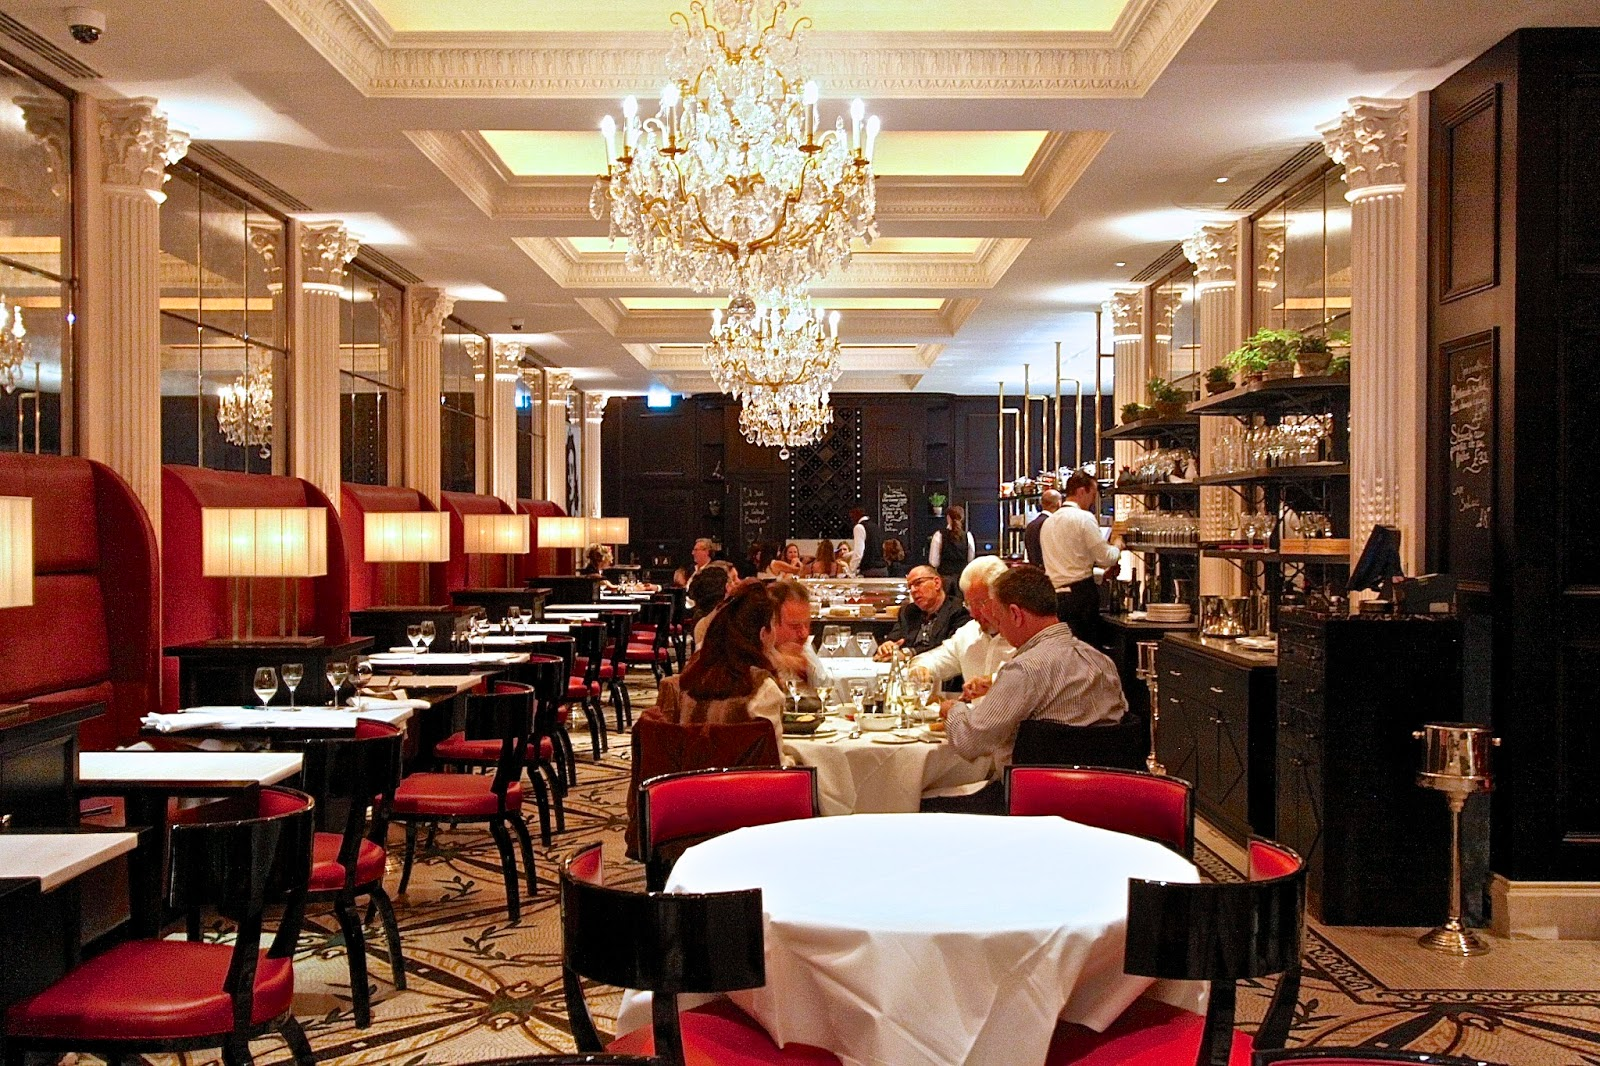 brasserie chavot revisited and a to-die-for cassoulet!